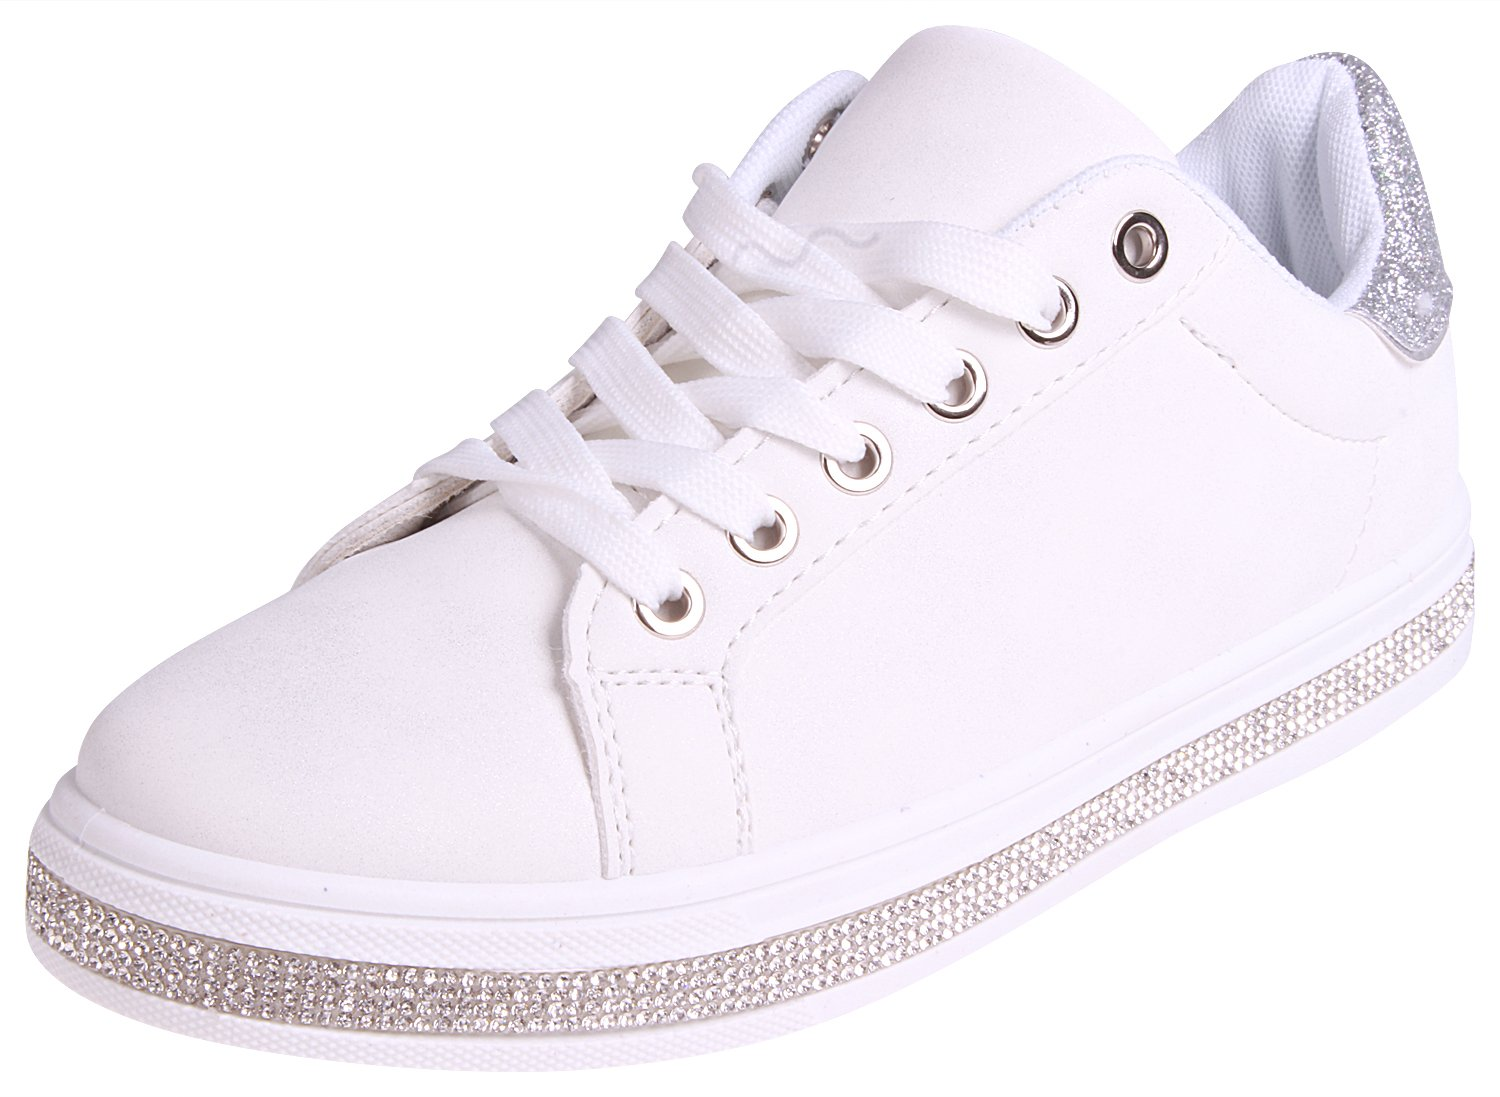 Enimay Womens Glitter Fashion Sneakers Lace Up Shoes White Size 8